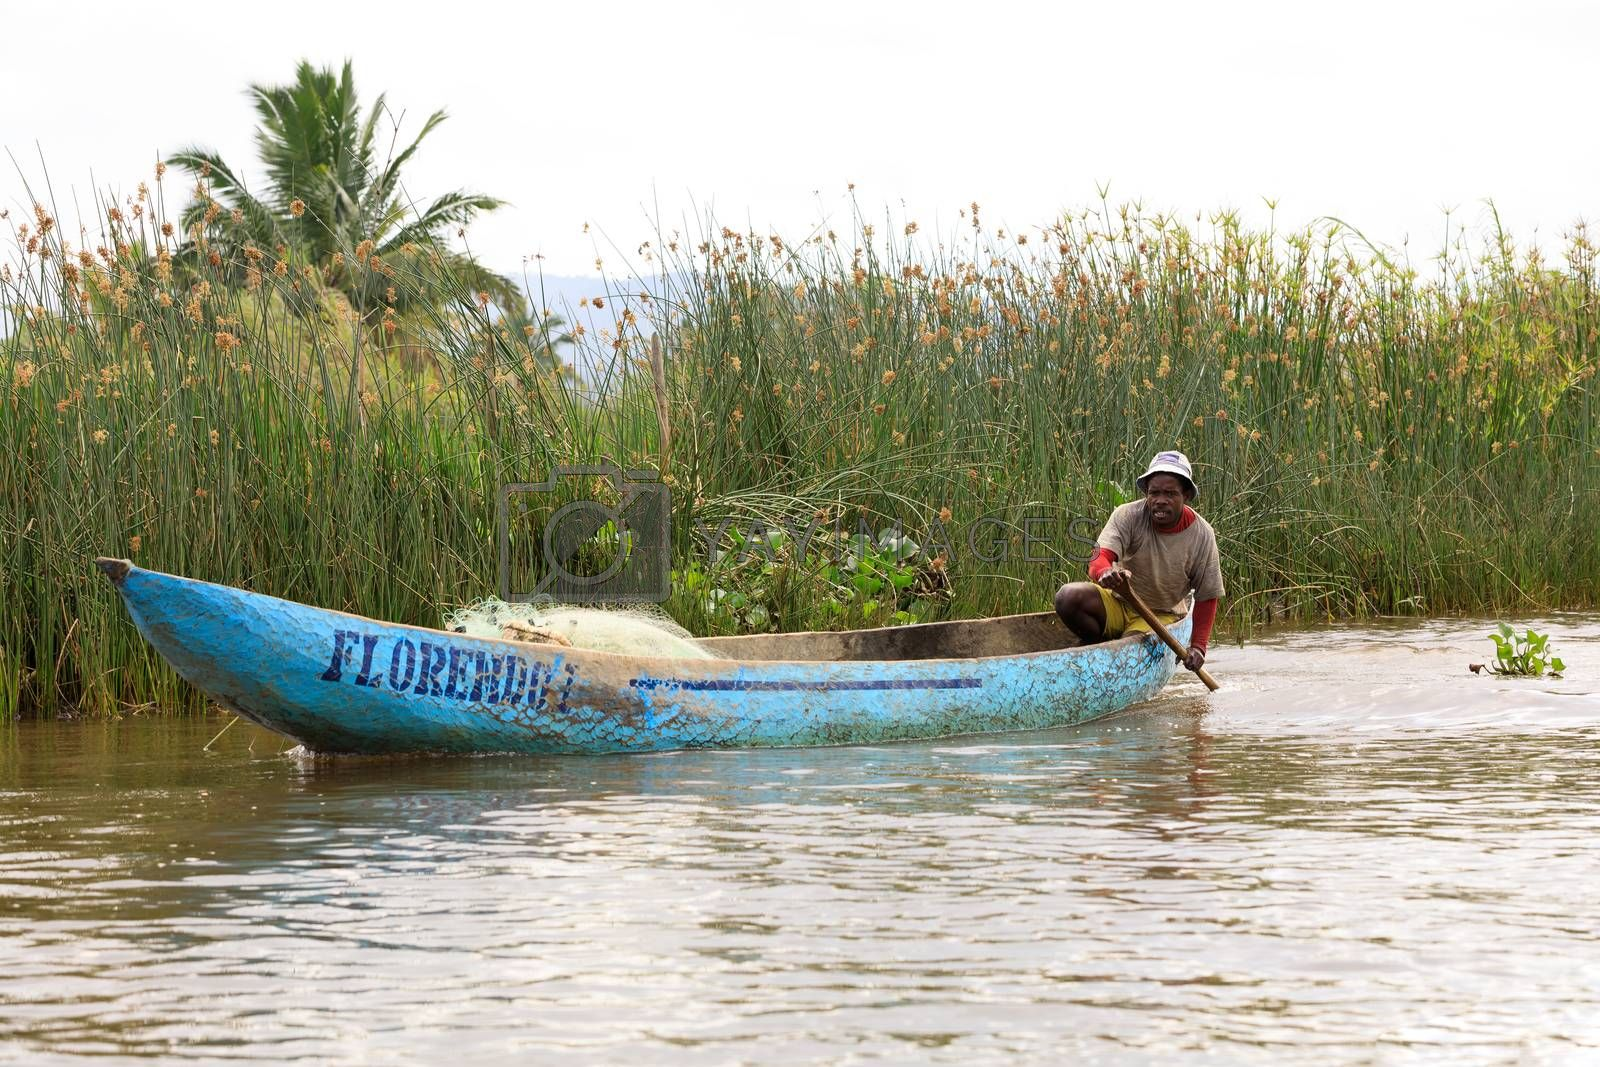 MADAGASCAR OCTOBER 19.2016 Malagasy countryside people from village transport freight by Traditional handmade dugout wooden boat. Everyday life on the river. Maroantsetra October 19. 2016, Madagascar.